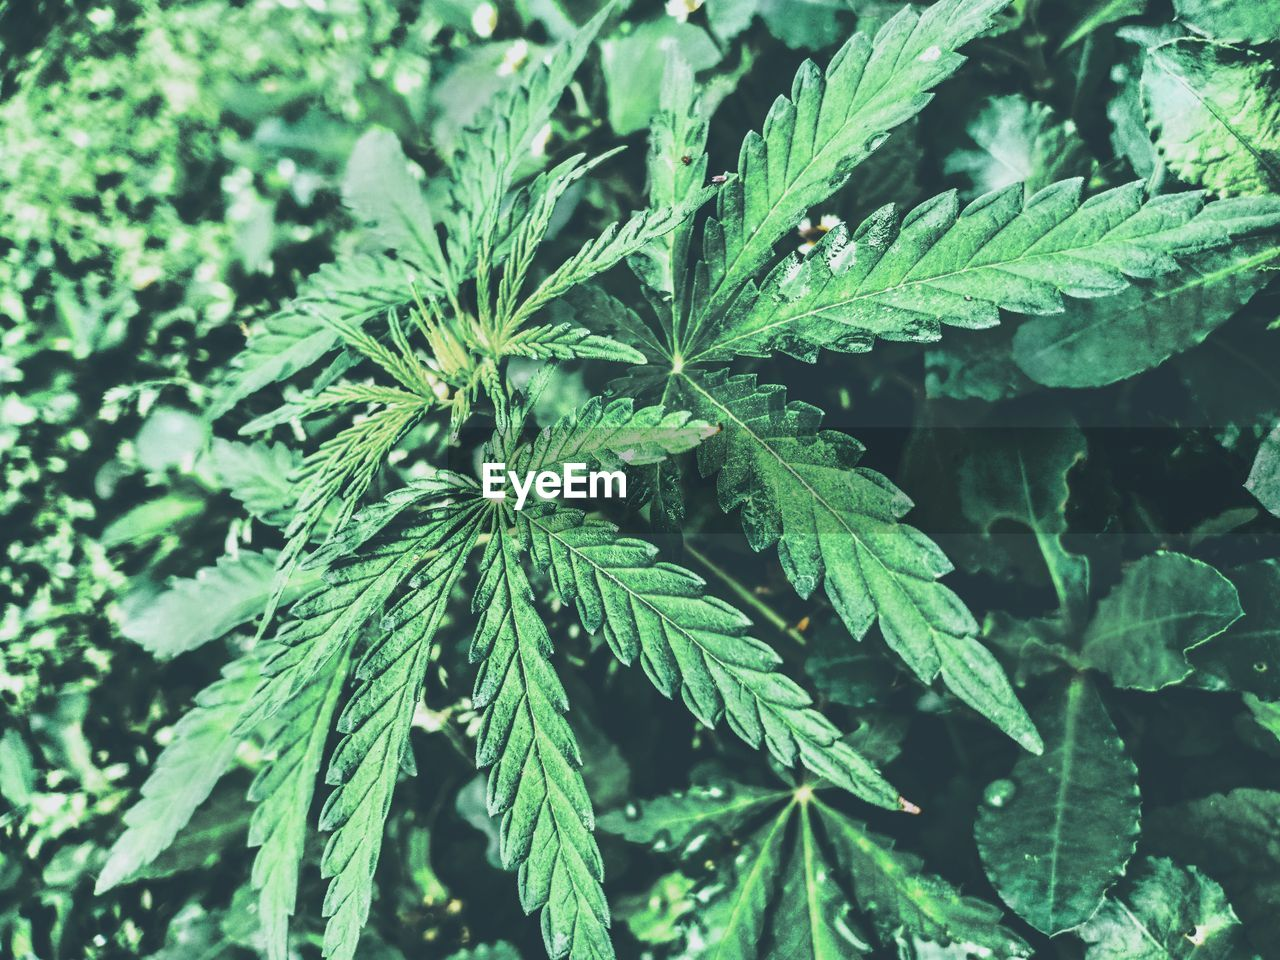 green color, leaf, plant part, plant, marijuana - herbal cannabis, close-up, cannabis plant, growth, narcotic, nature, healthcare and medicine, recreational drug, herb, no people, medicine, day, food, social issues, beauty in nature, food and drink, outdoors